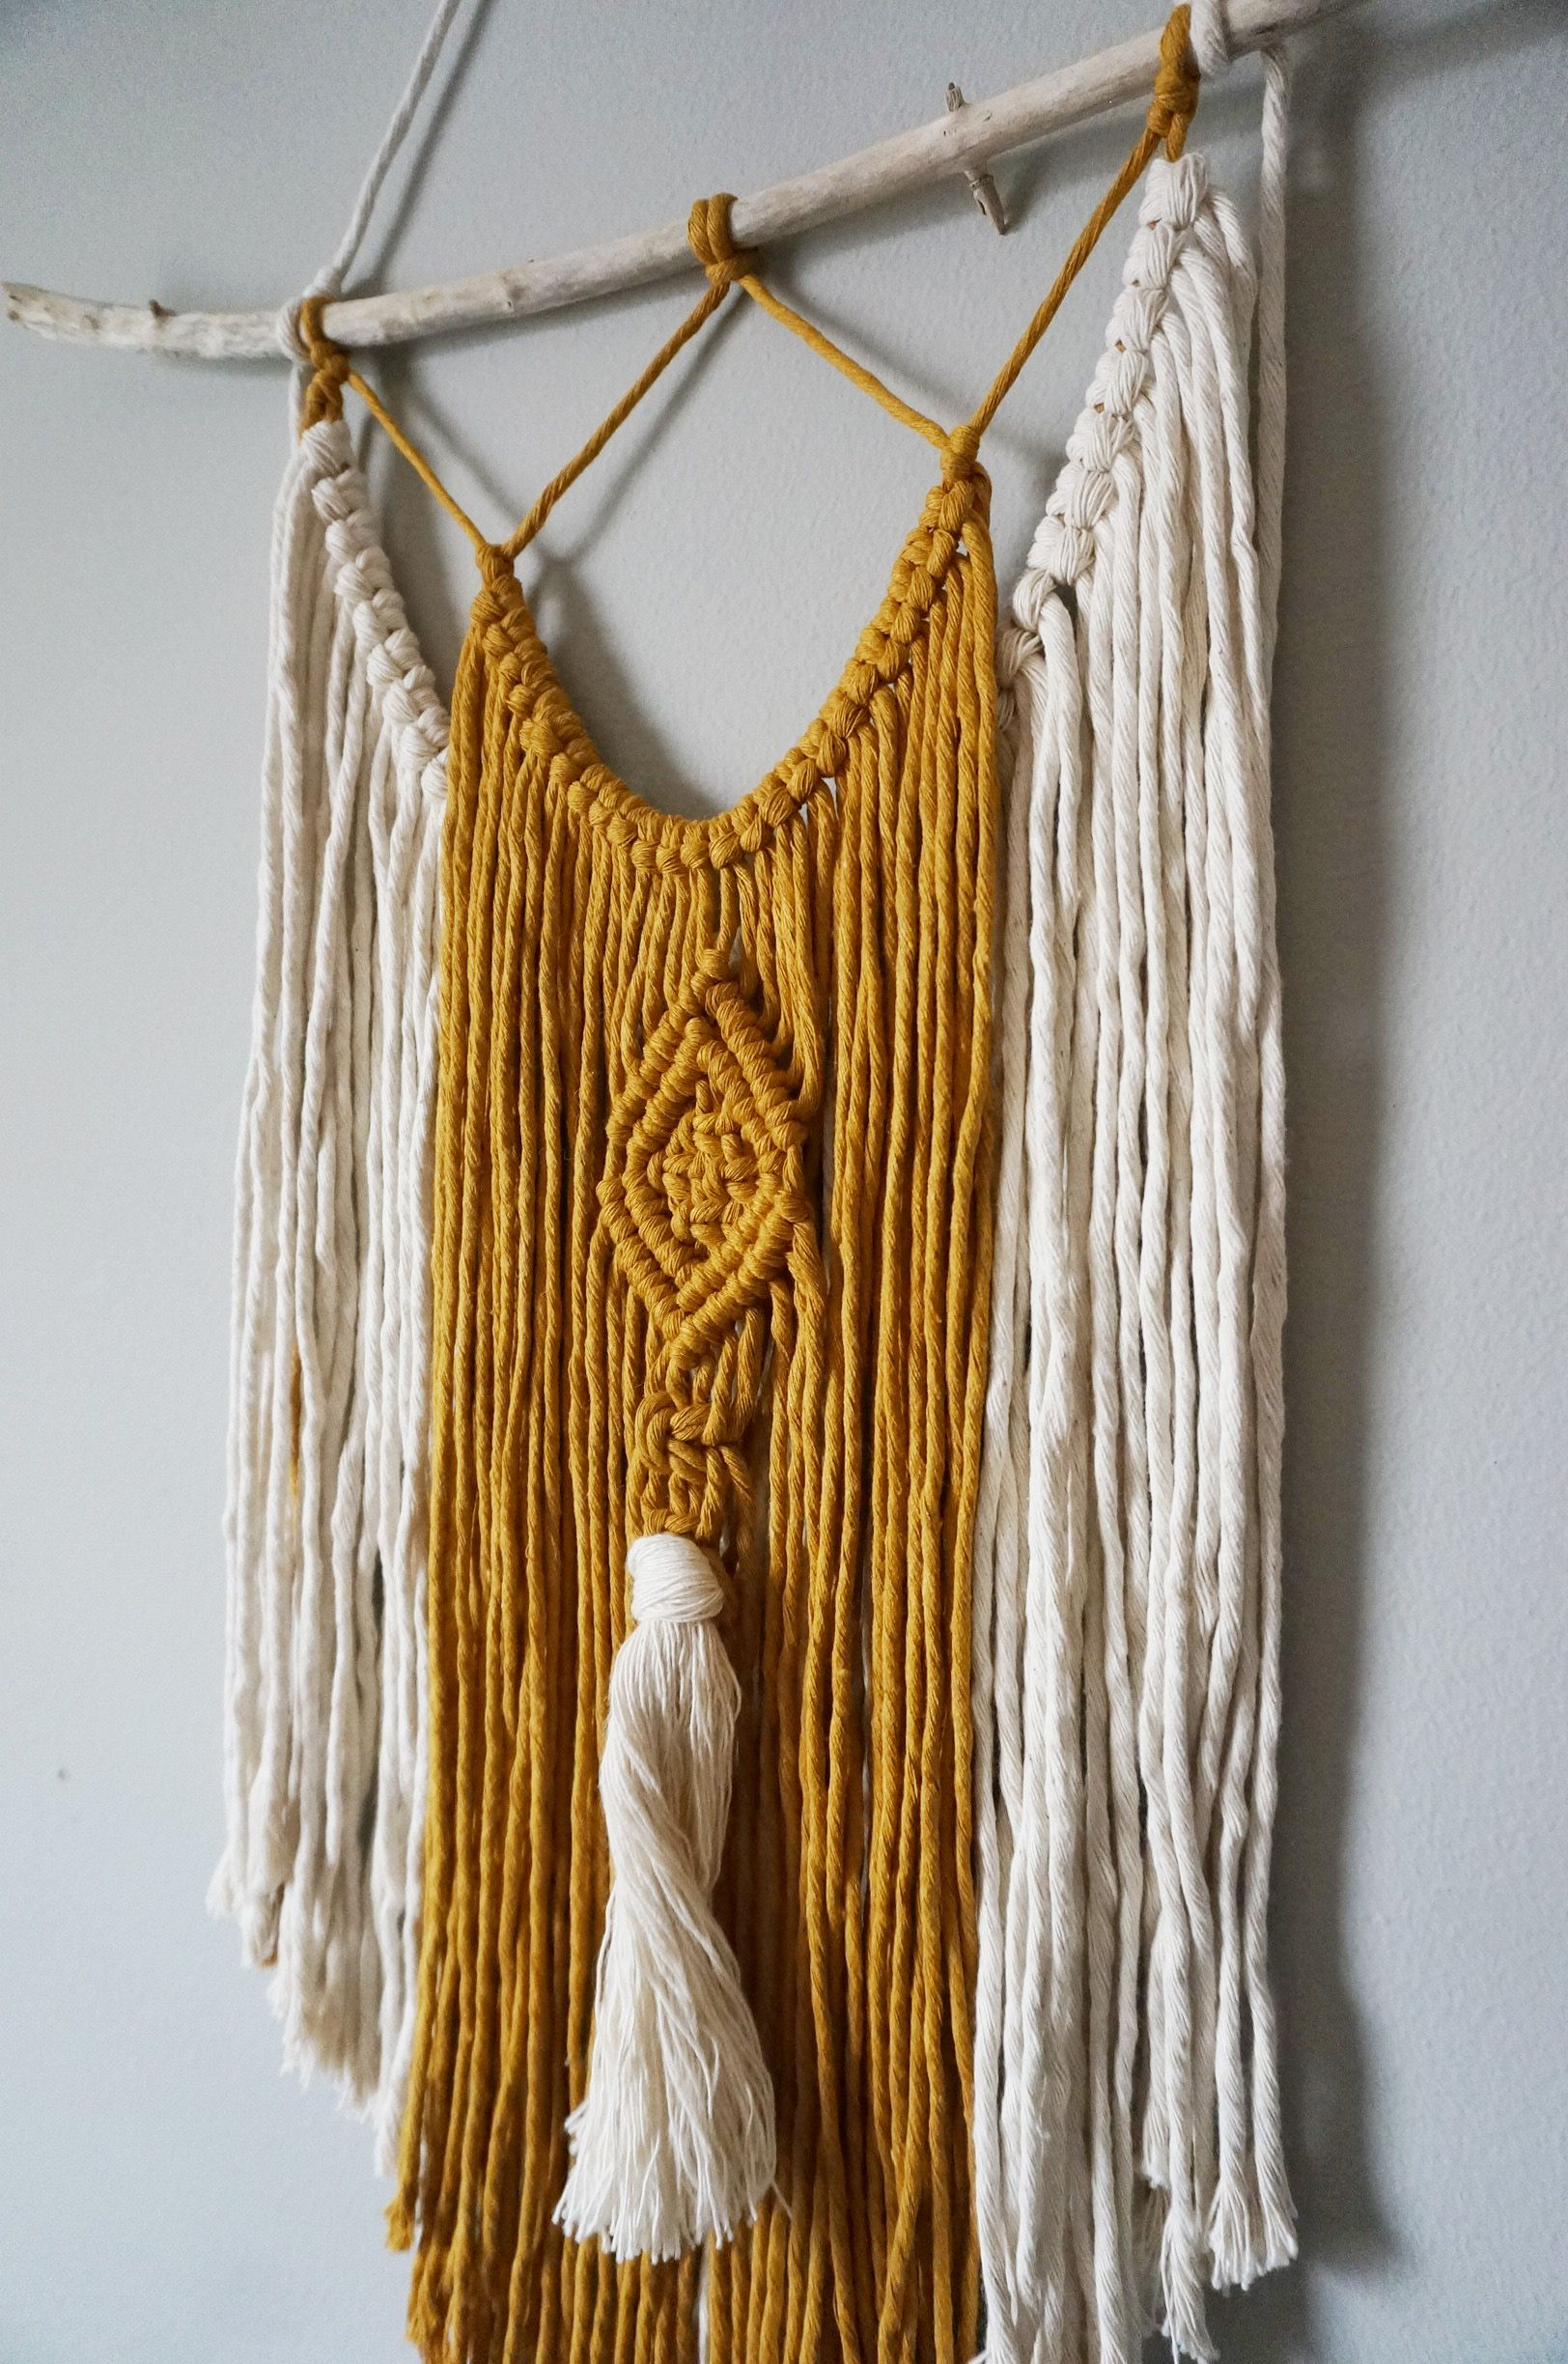 Two Tone Macrame Wall Hanging Ivory And Mustard Knot And Vine Handmade Decor Macrame Wall Hanging Macrame Wall Art Macrame Design